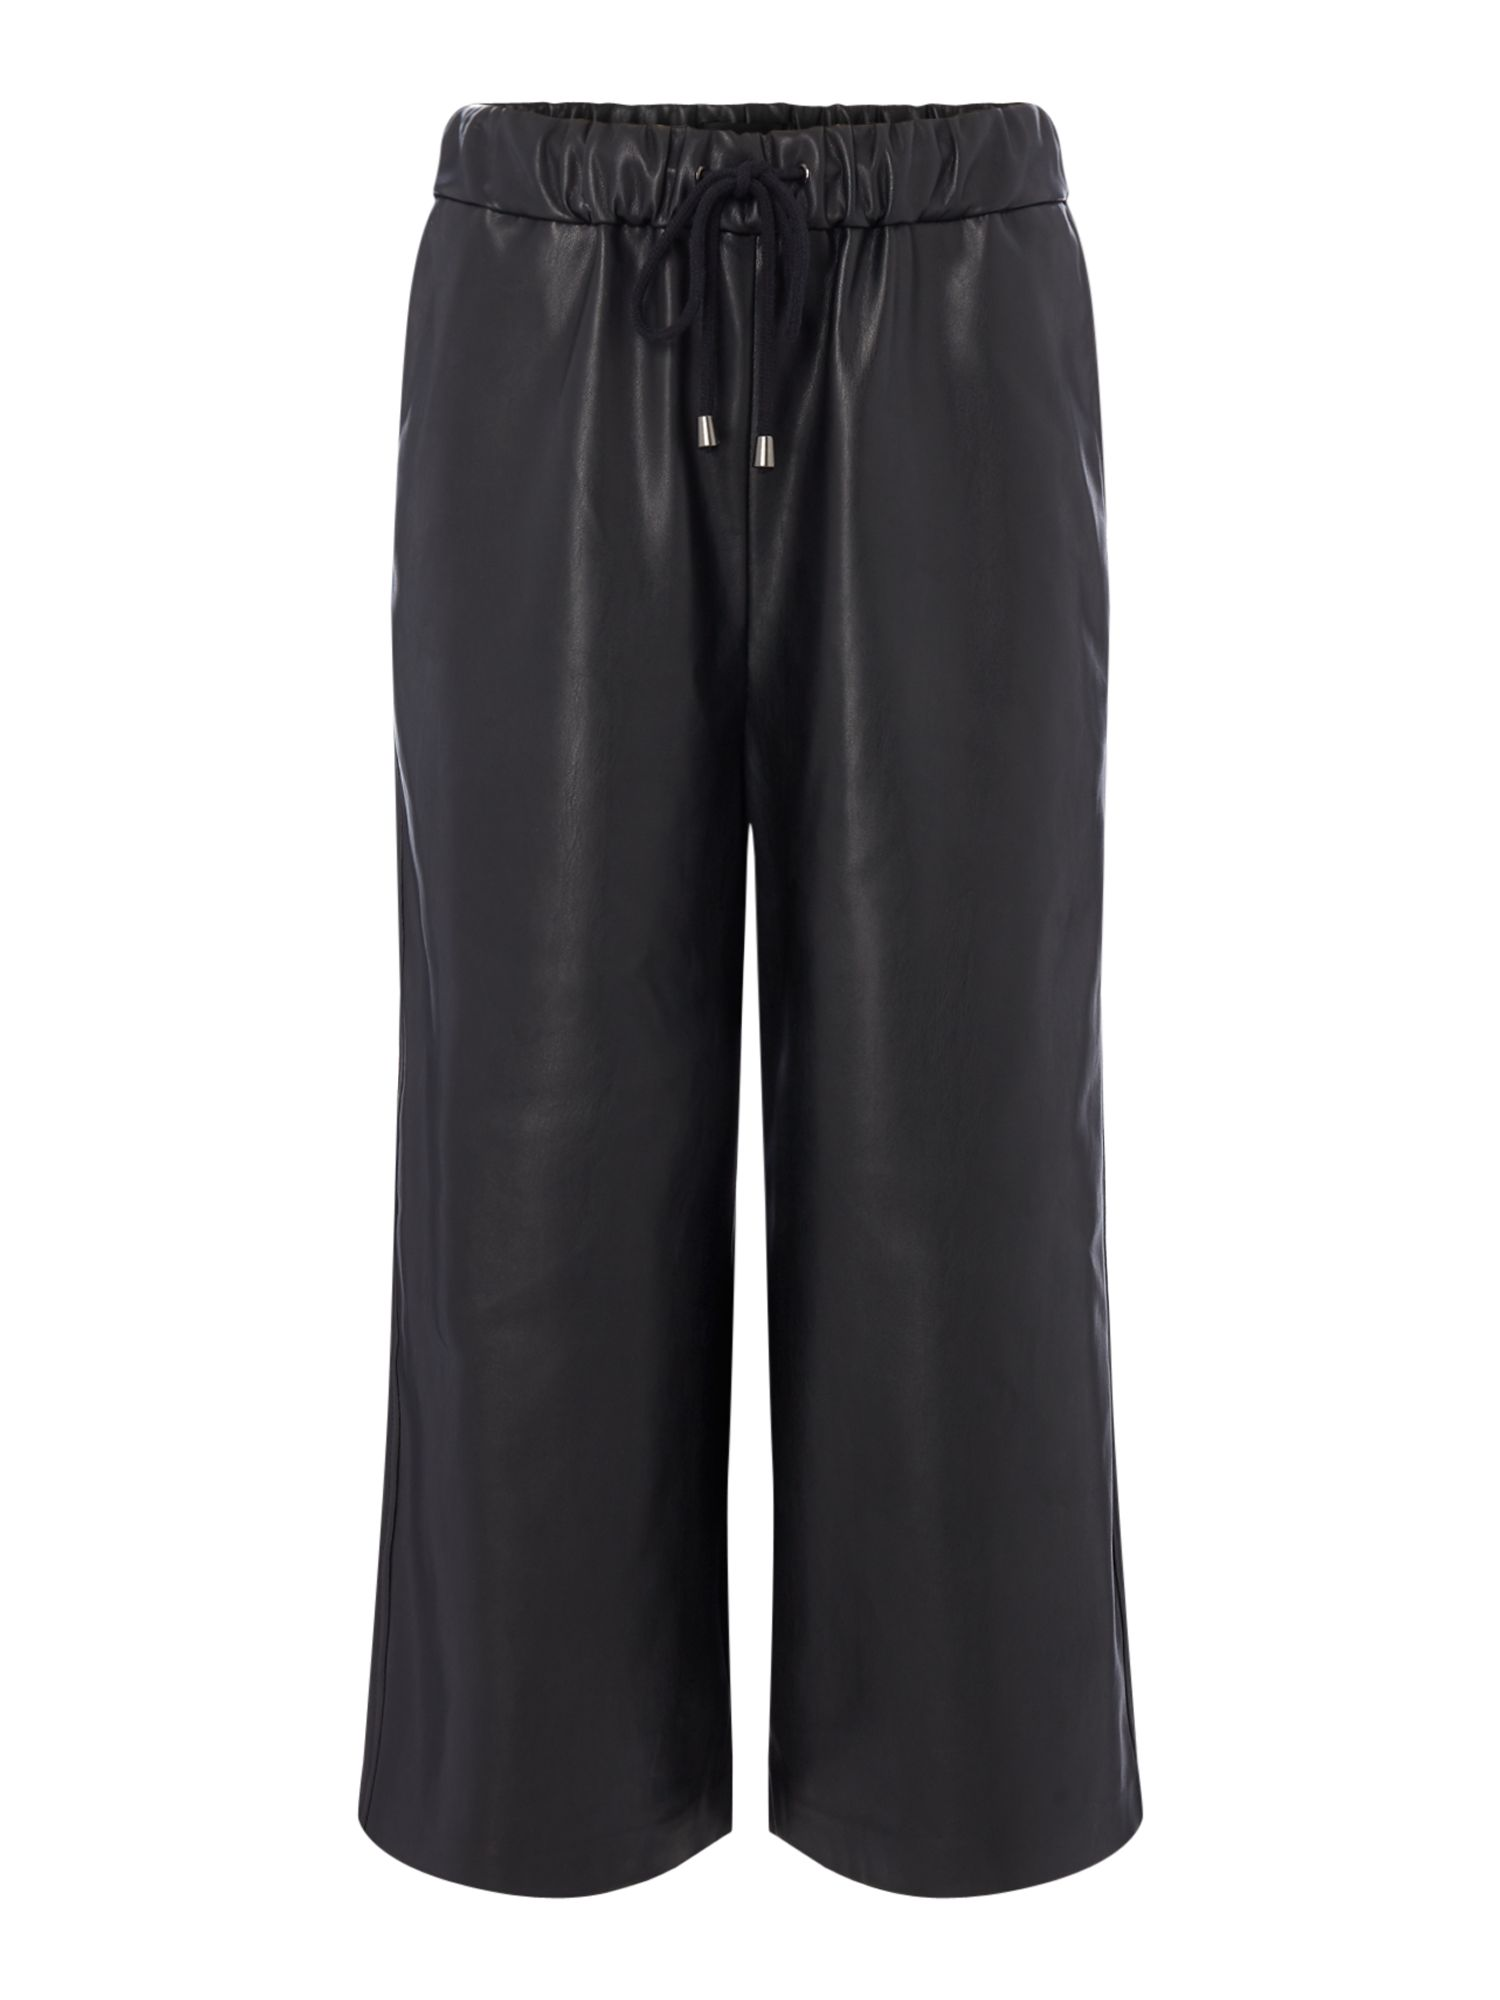 Label Lab PU Crop Wide Leg Trouser, Black